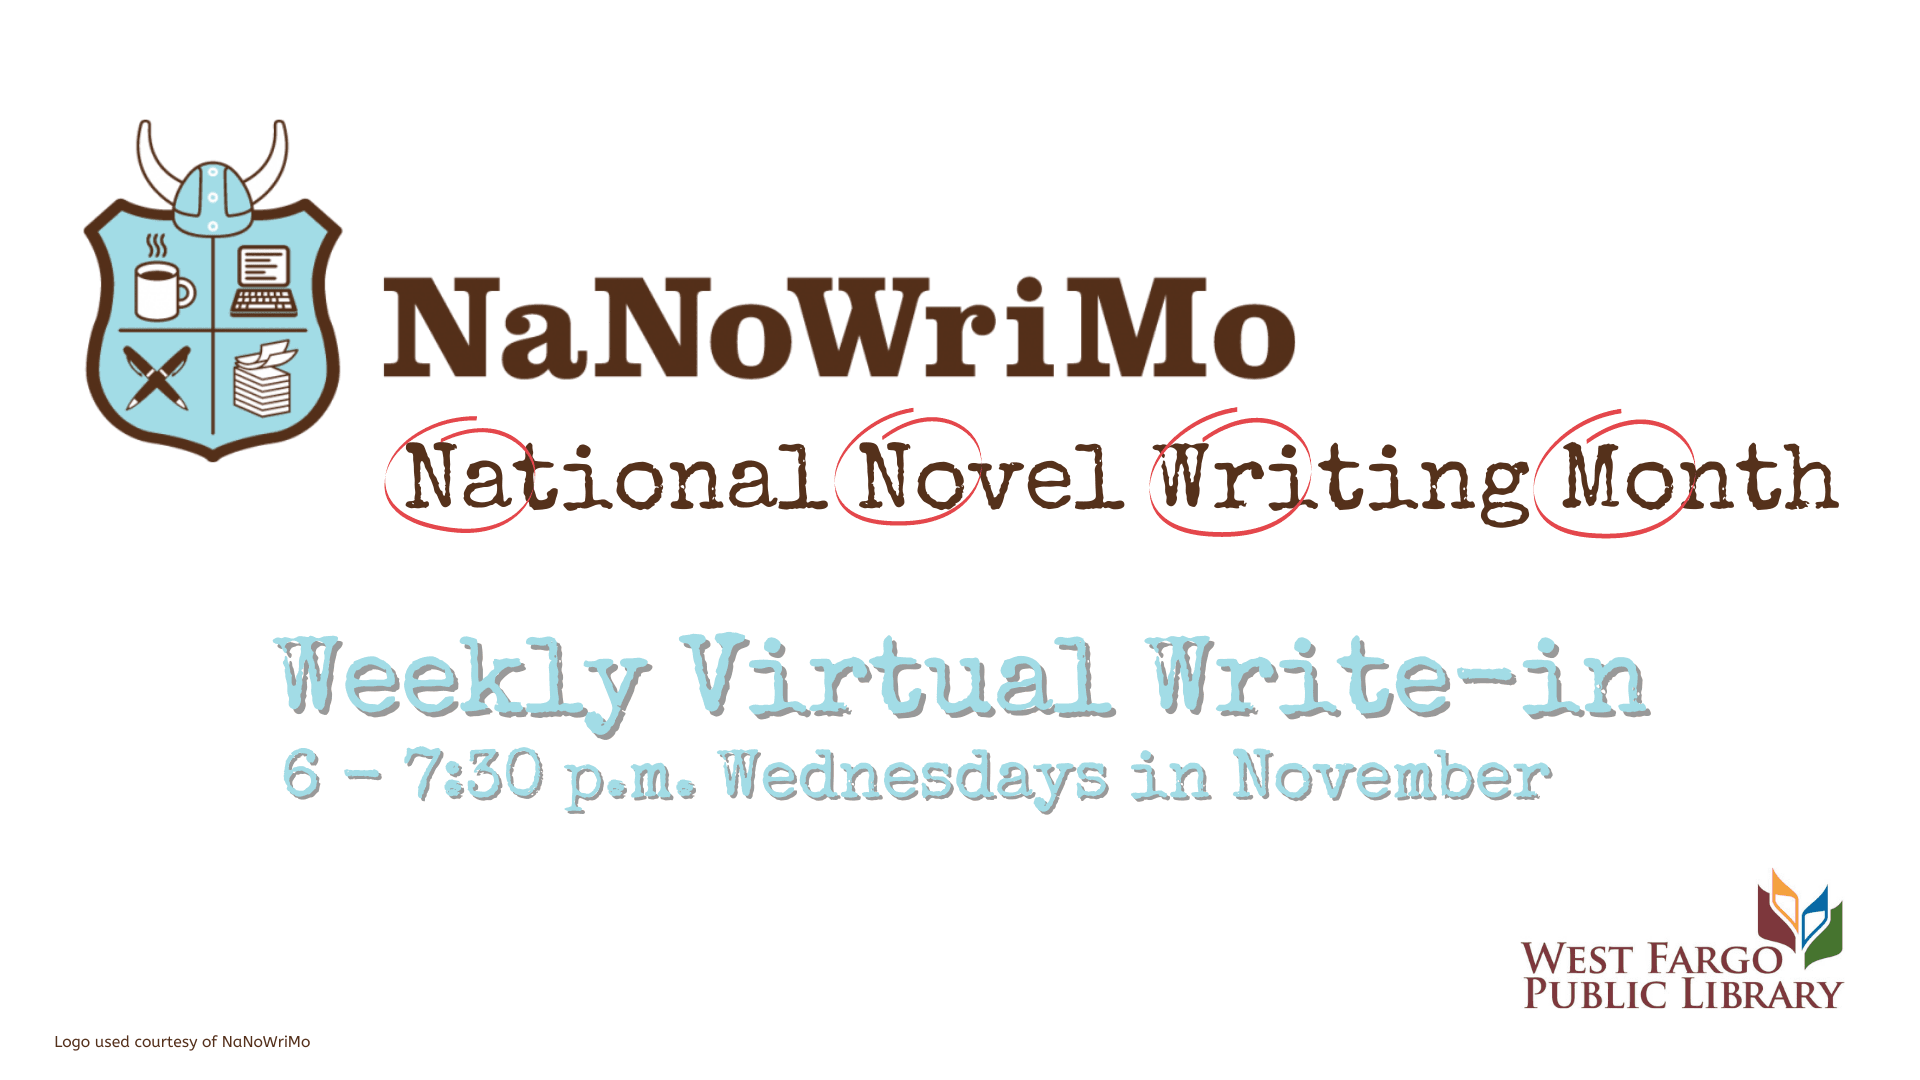 NaNoWriMo Weekly Virtual Write-in